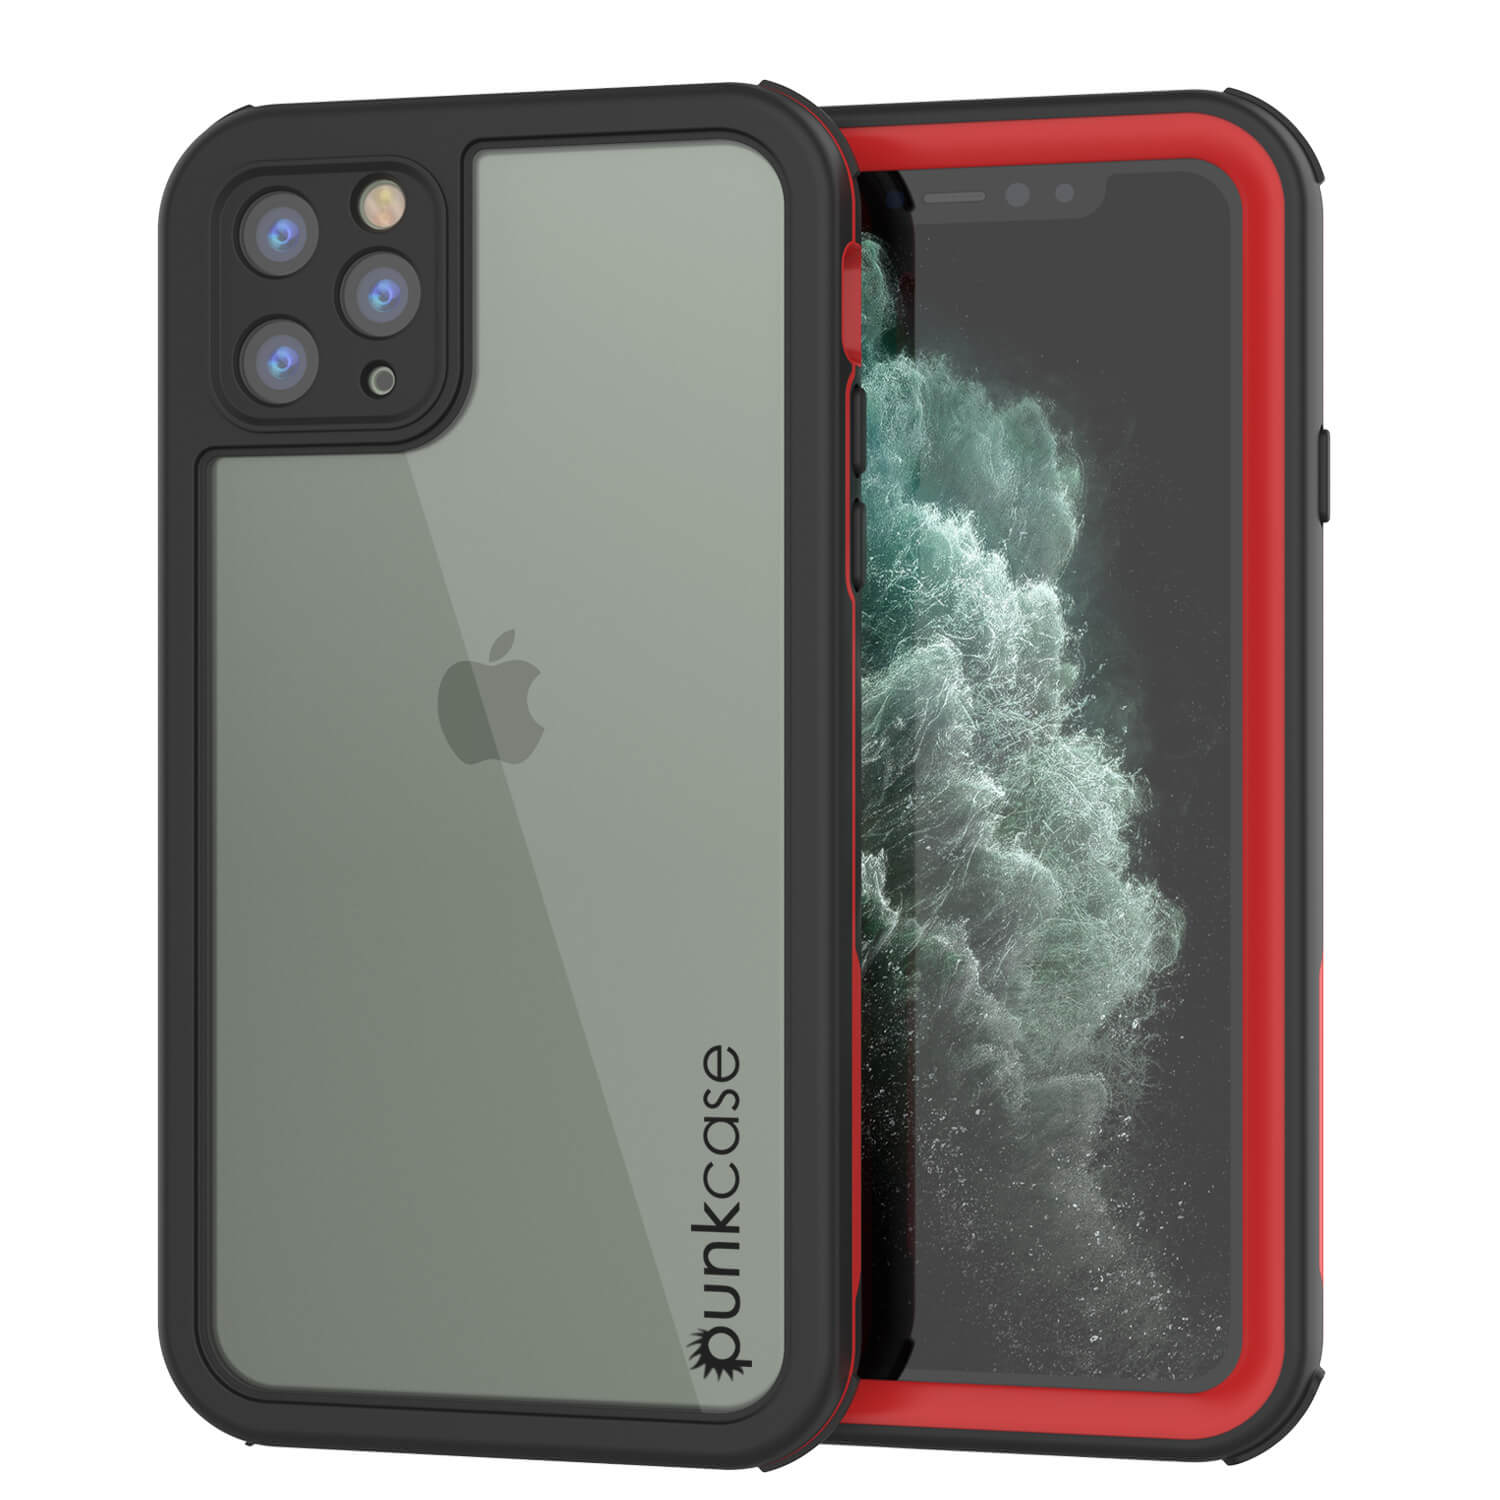 iPhone 11 Pro Max Waterproof IP68 Case, Punkcase [red] [Rapture Series]  W/Built in Screen Protector